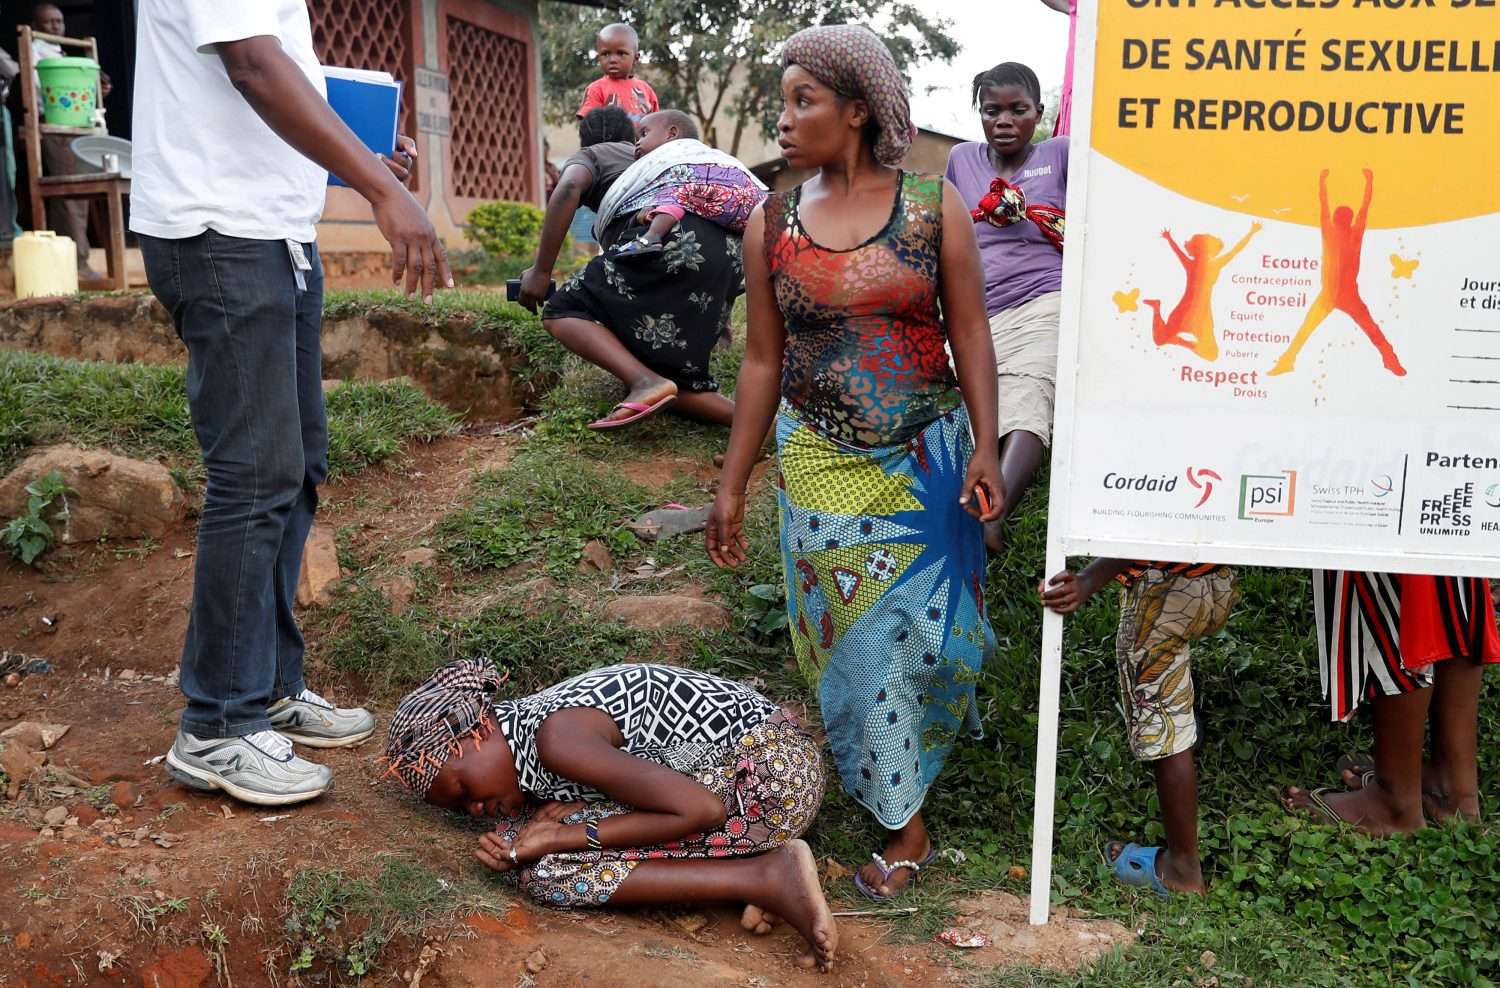 FILE PHOTO: A mother of a child, suspected of dying from Ebola, cries outside a hospital during the funeral in Beni, North Kivu Province of Democratic Republic of Congo, December 17, 2018. REUTERS/Goran Tomasevic